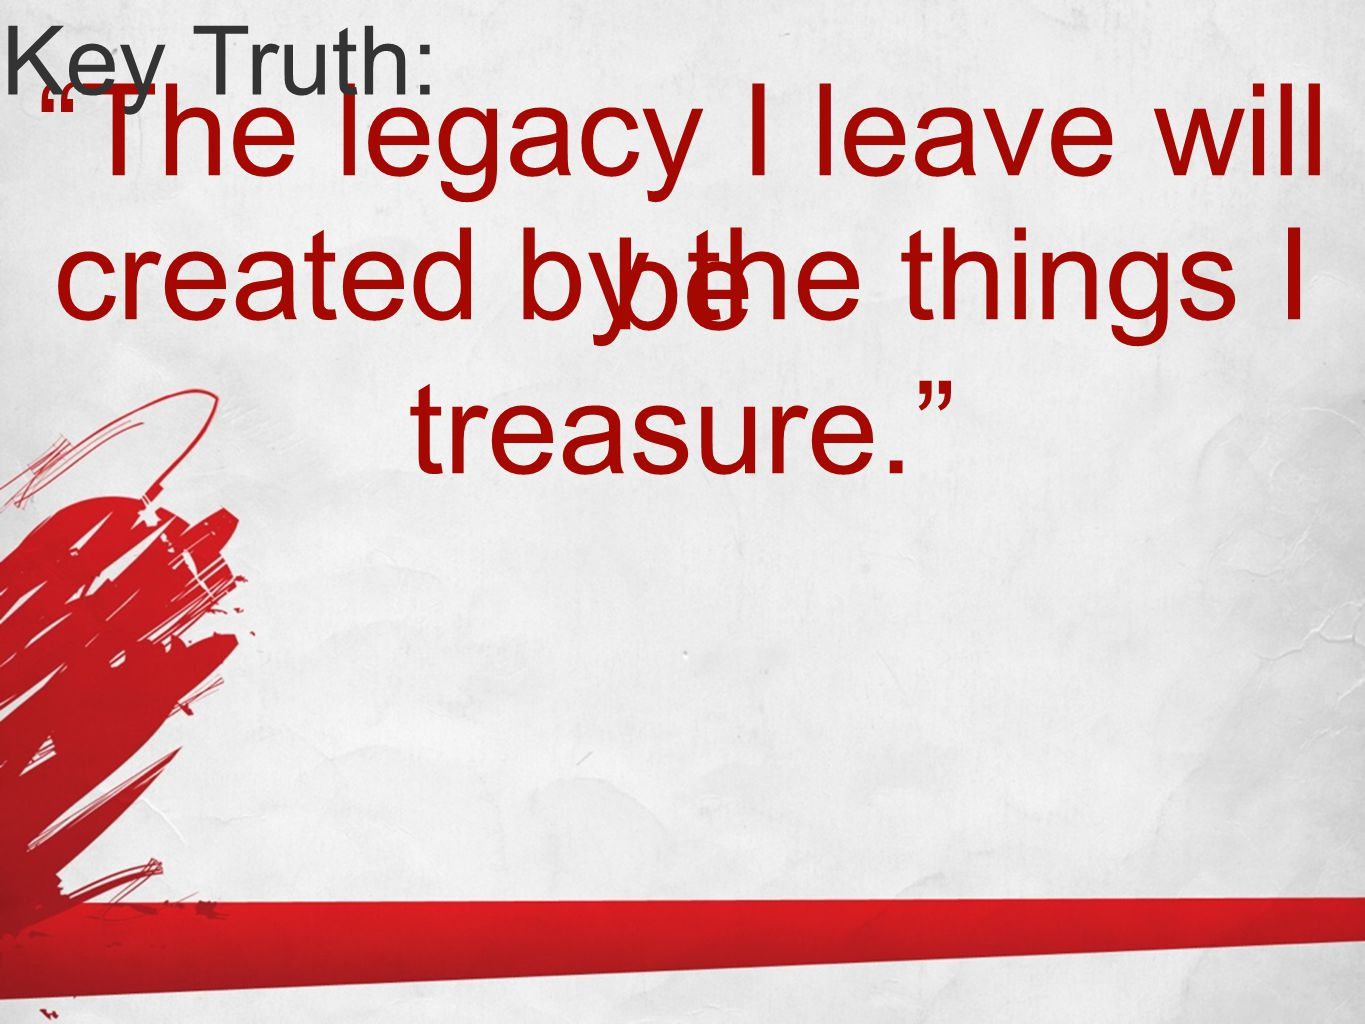 The legacy I leave will be Key Truth: created by the things I treasure.